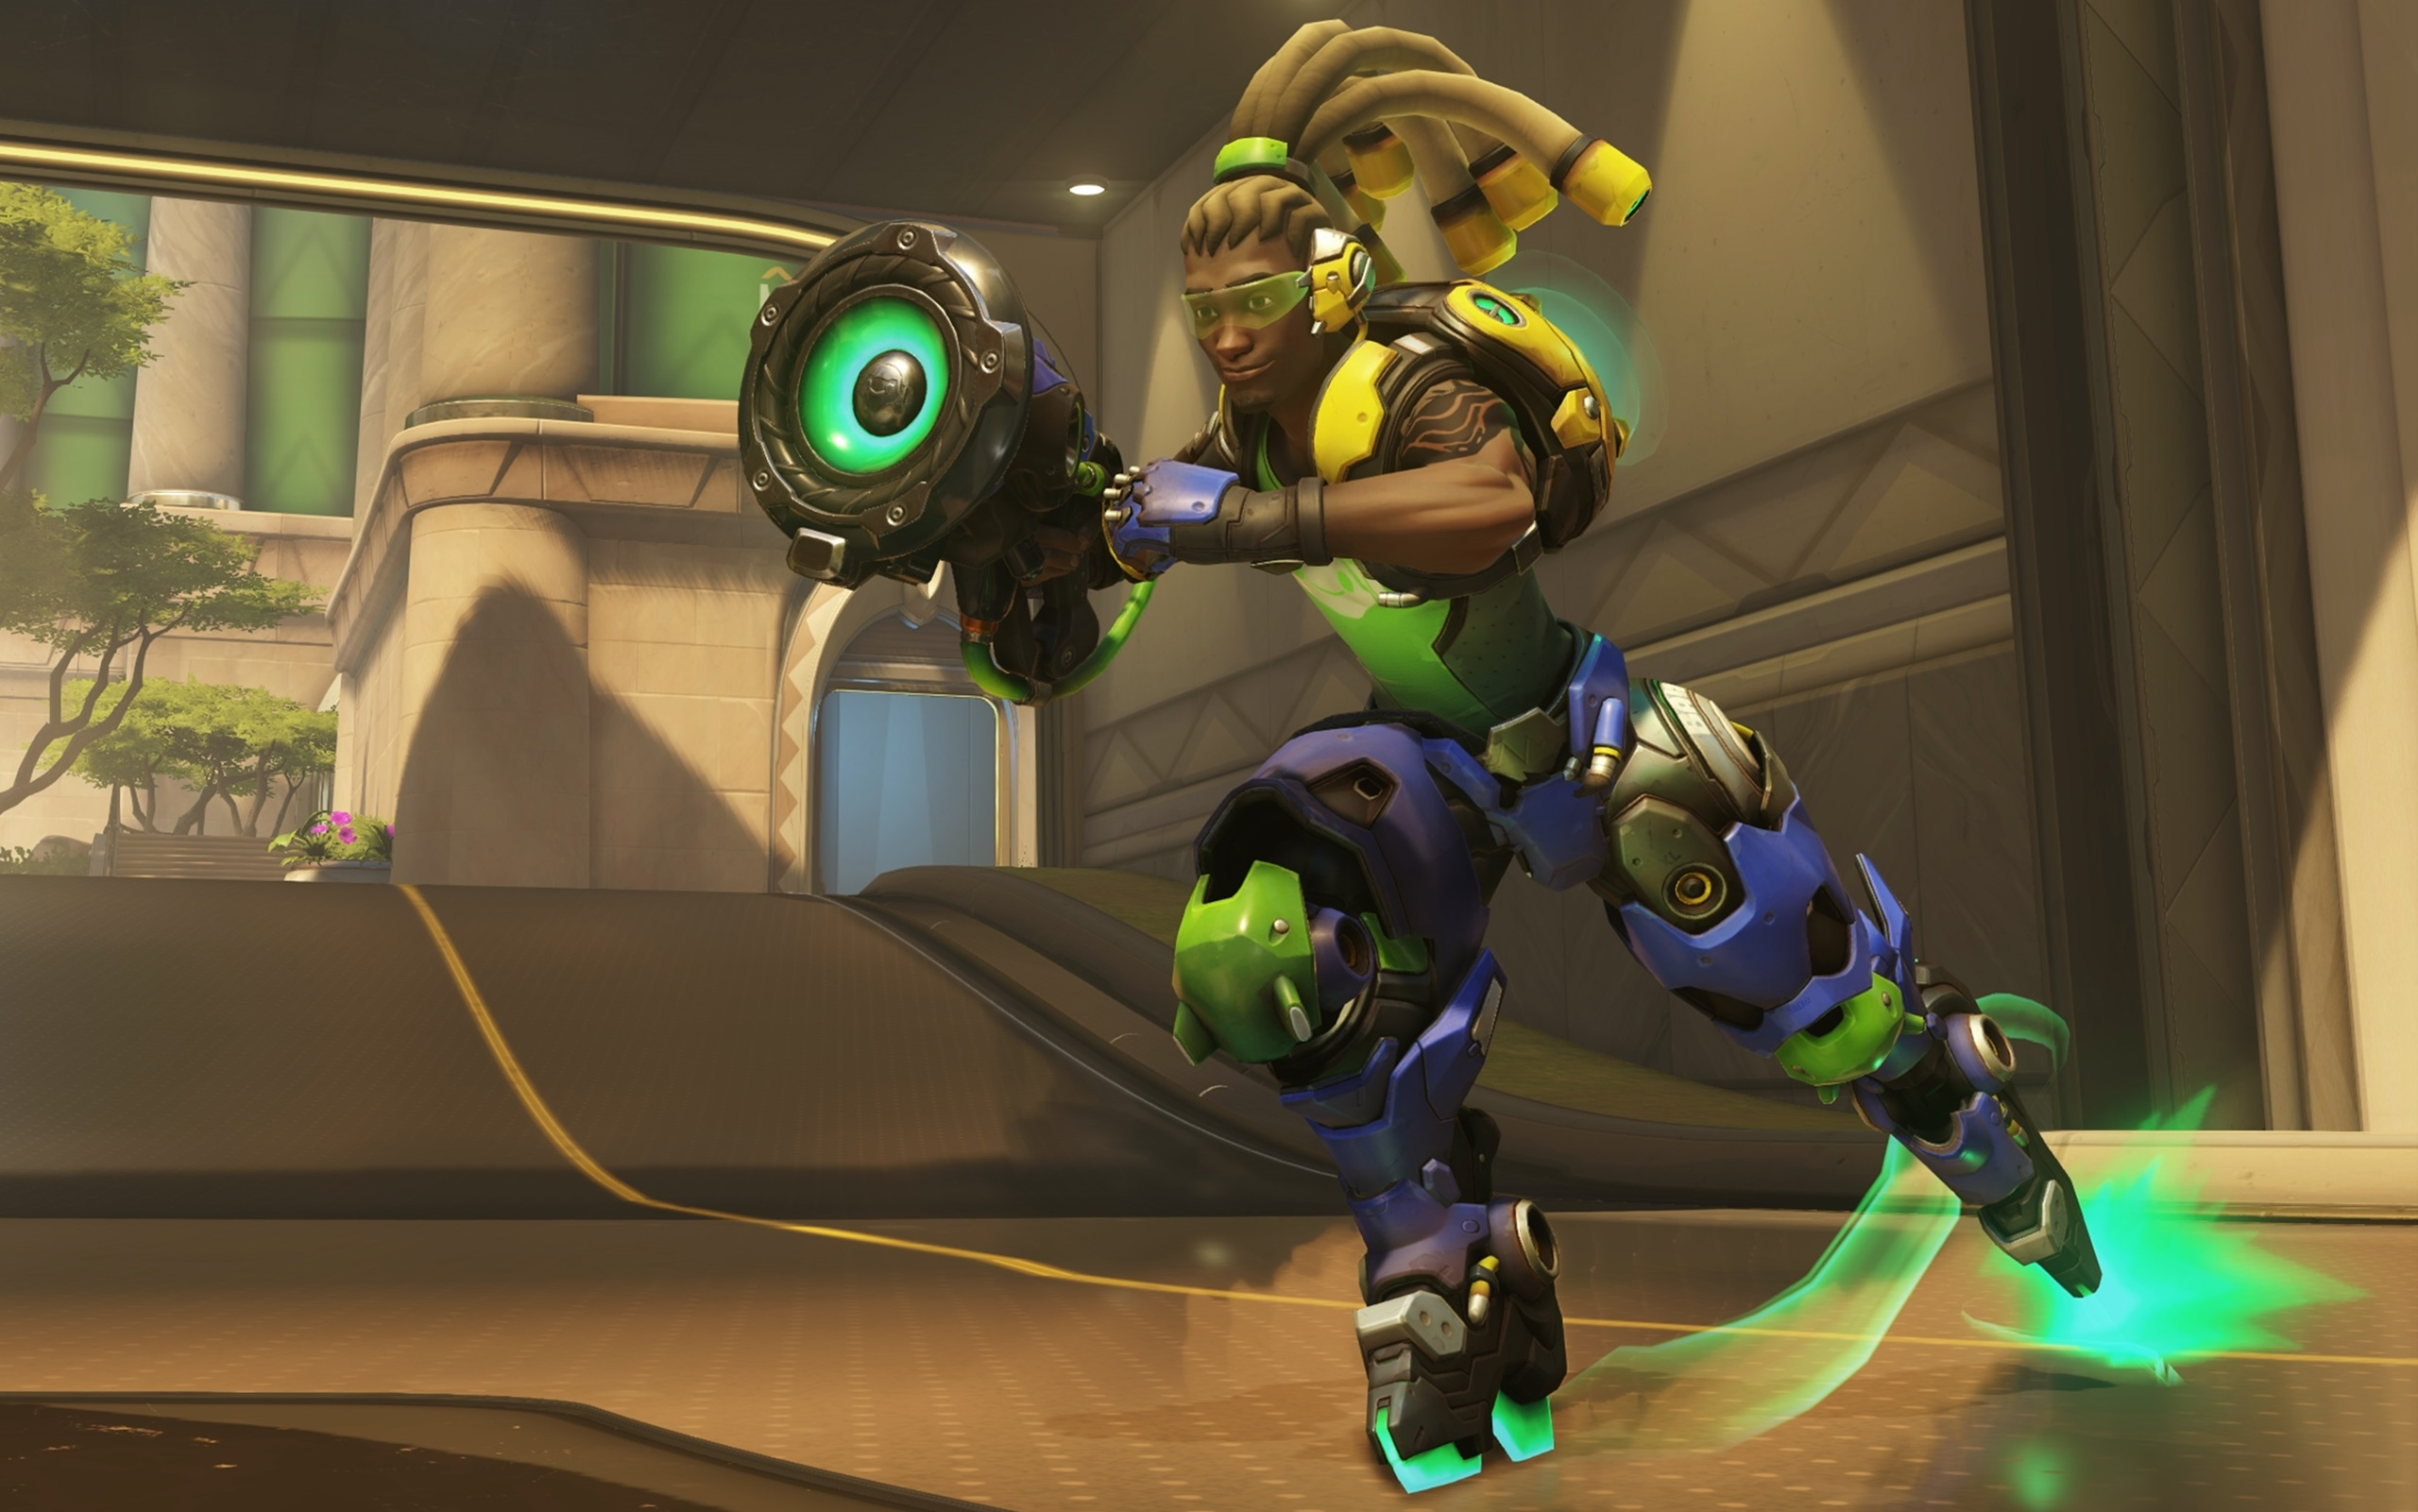 The Wall Game is Strong with This Lucio